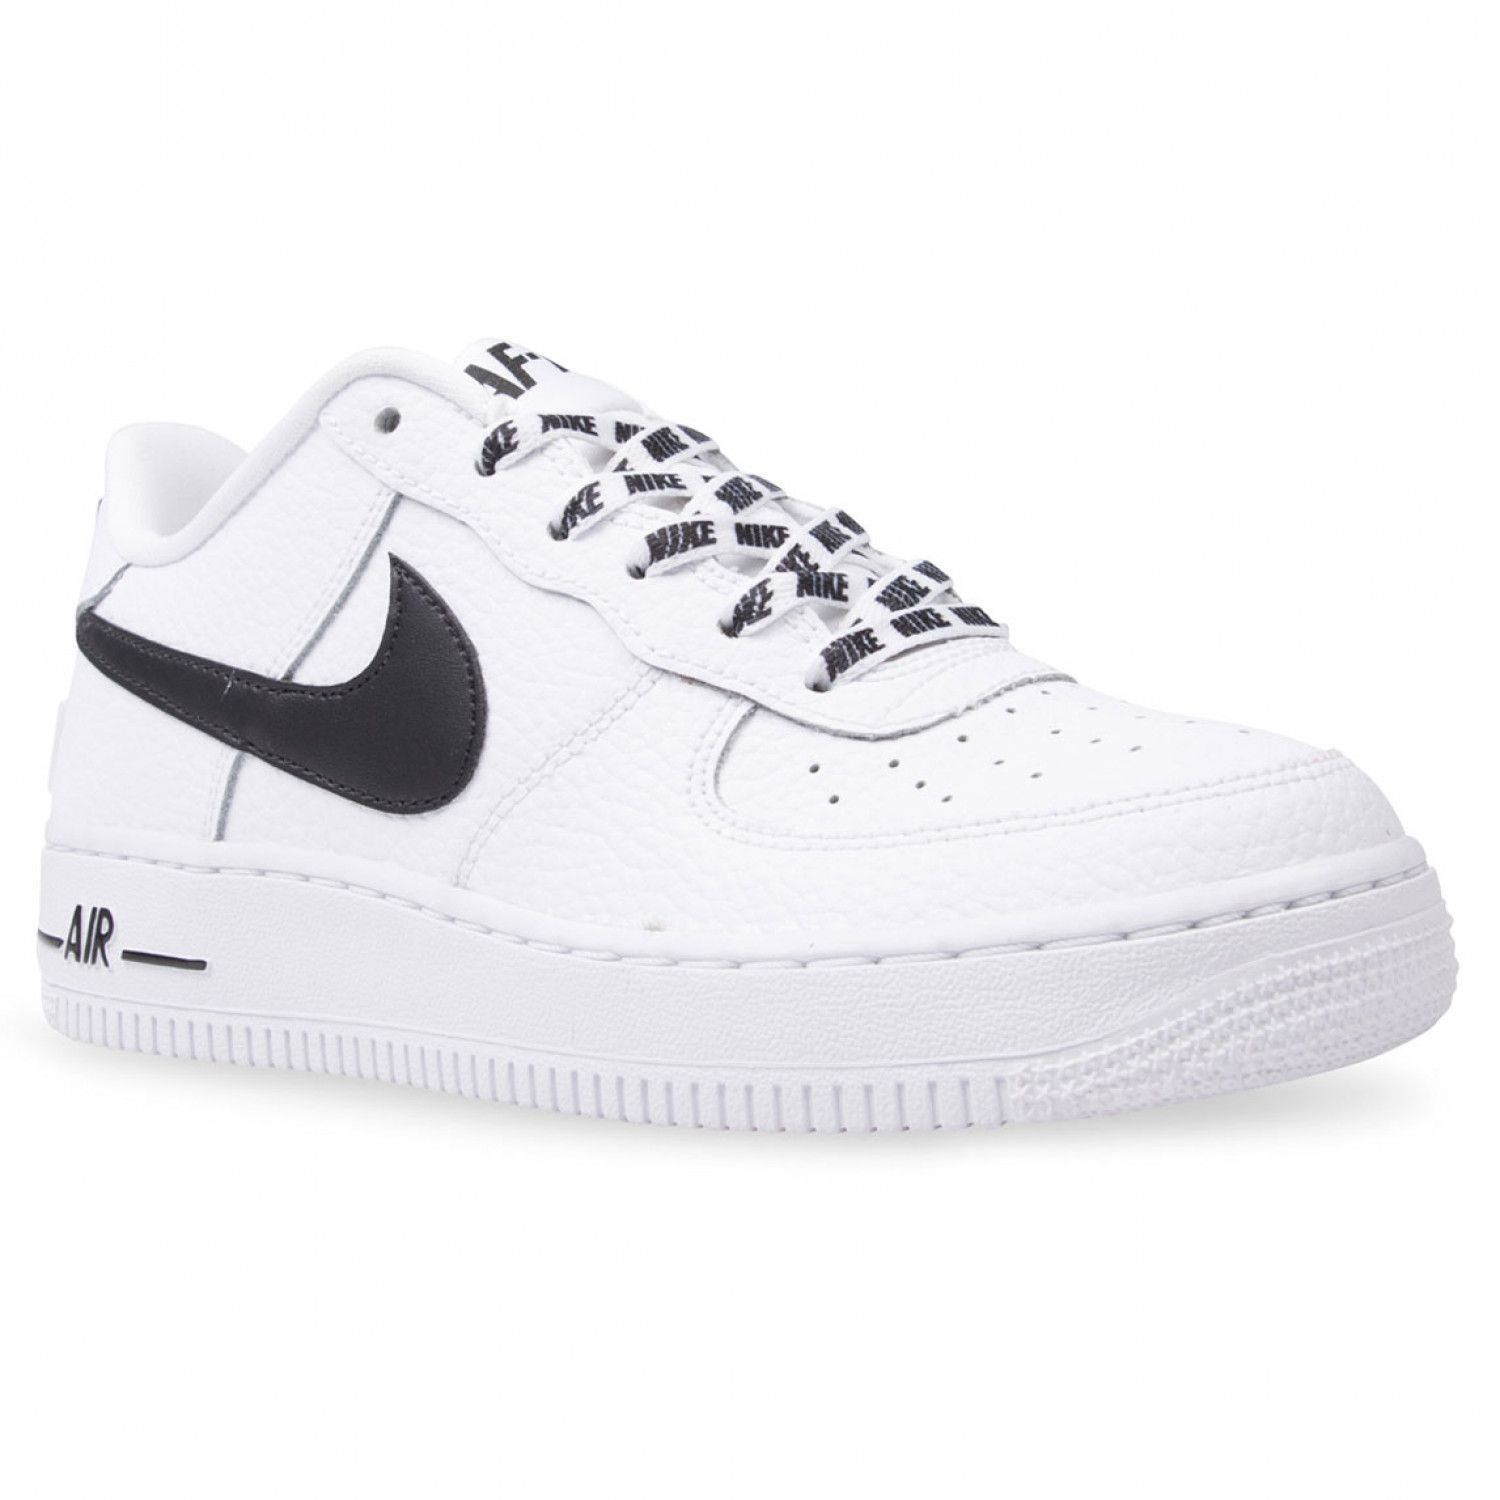 wholesale dealer b4f9a 0c196 Nike Sportswear AIR FORCE 1 GRADE SCHOOL